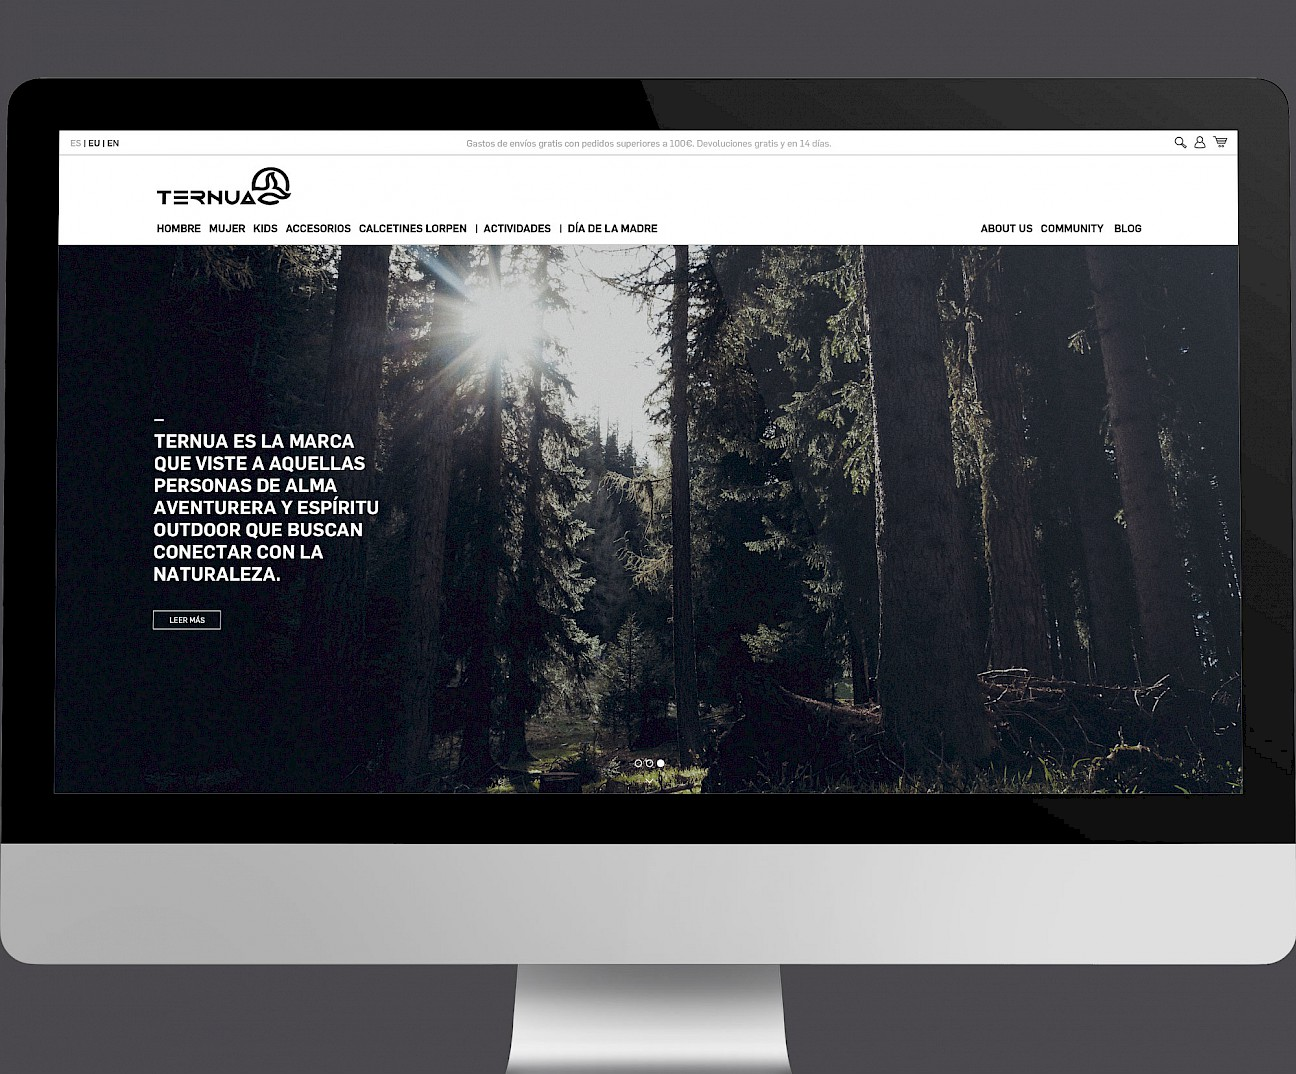 website branding design ternua 01 move wireframe digital